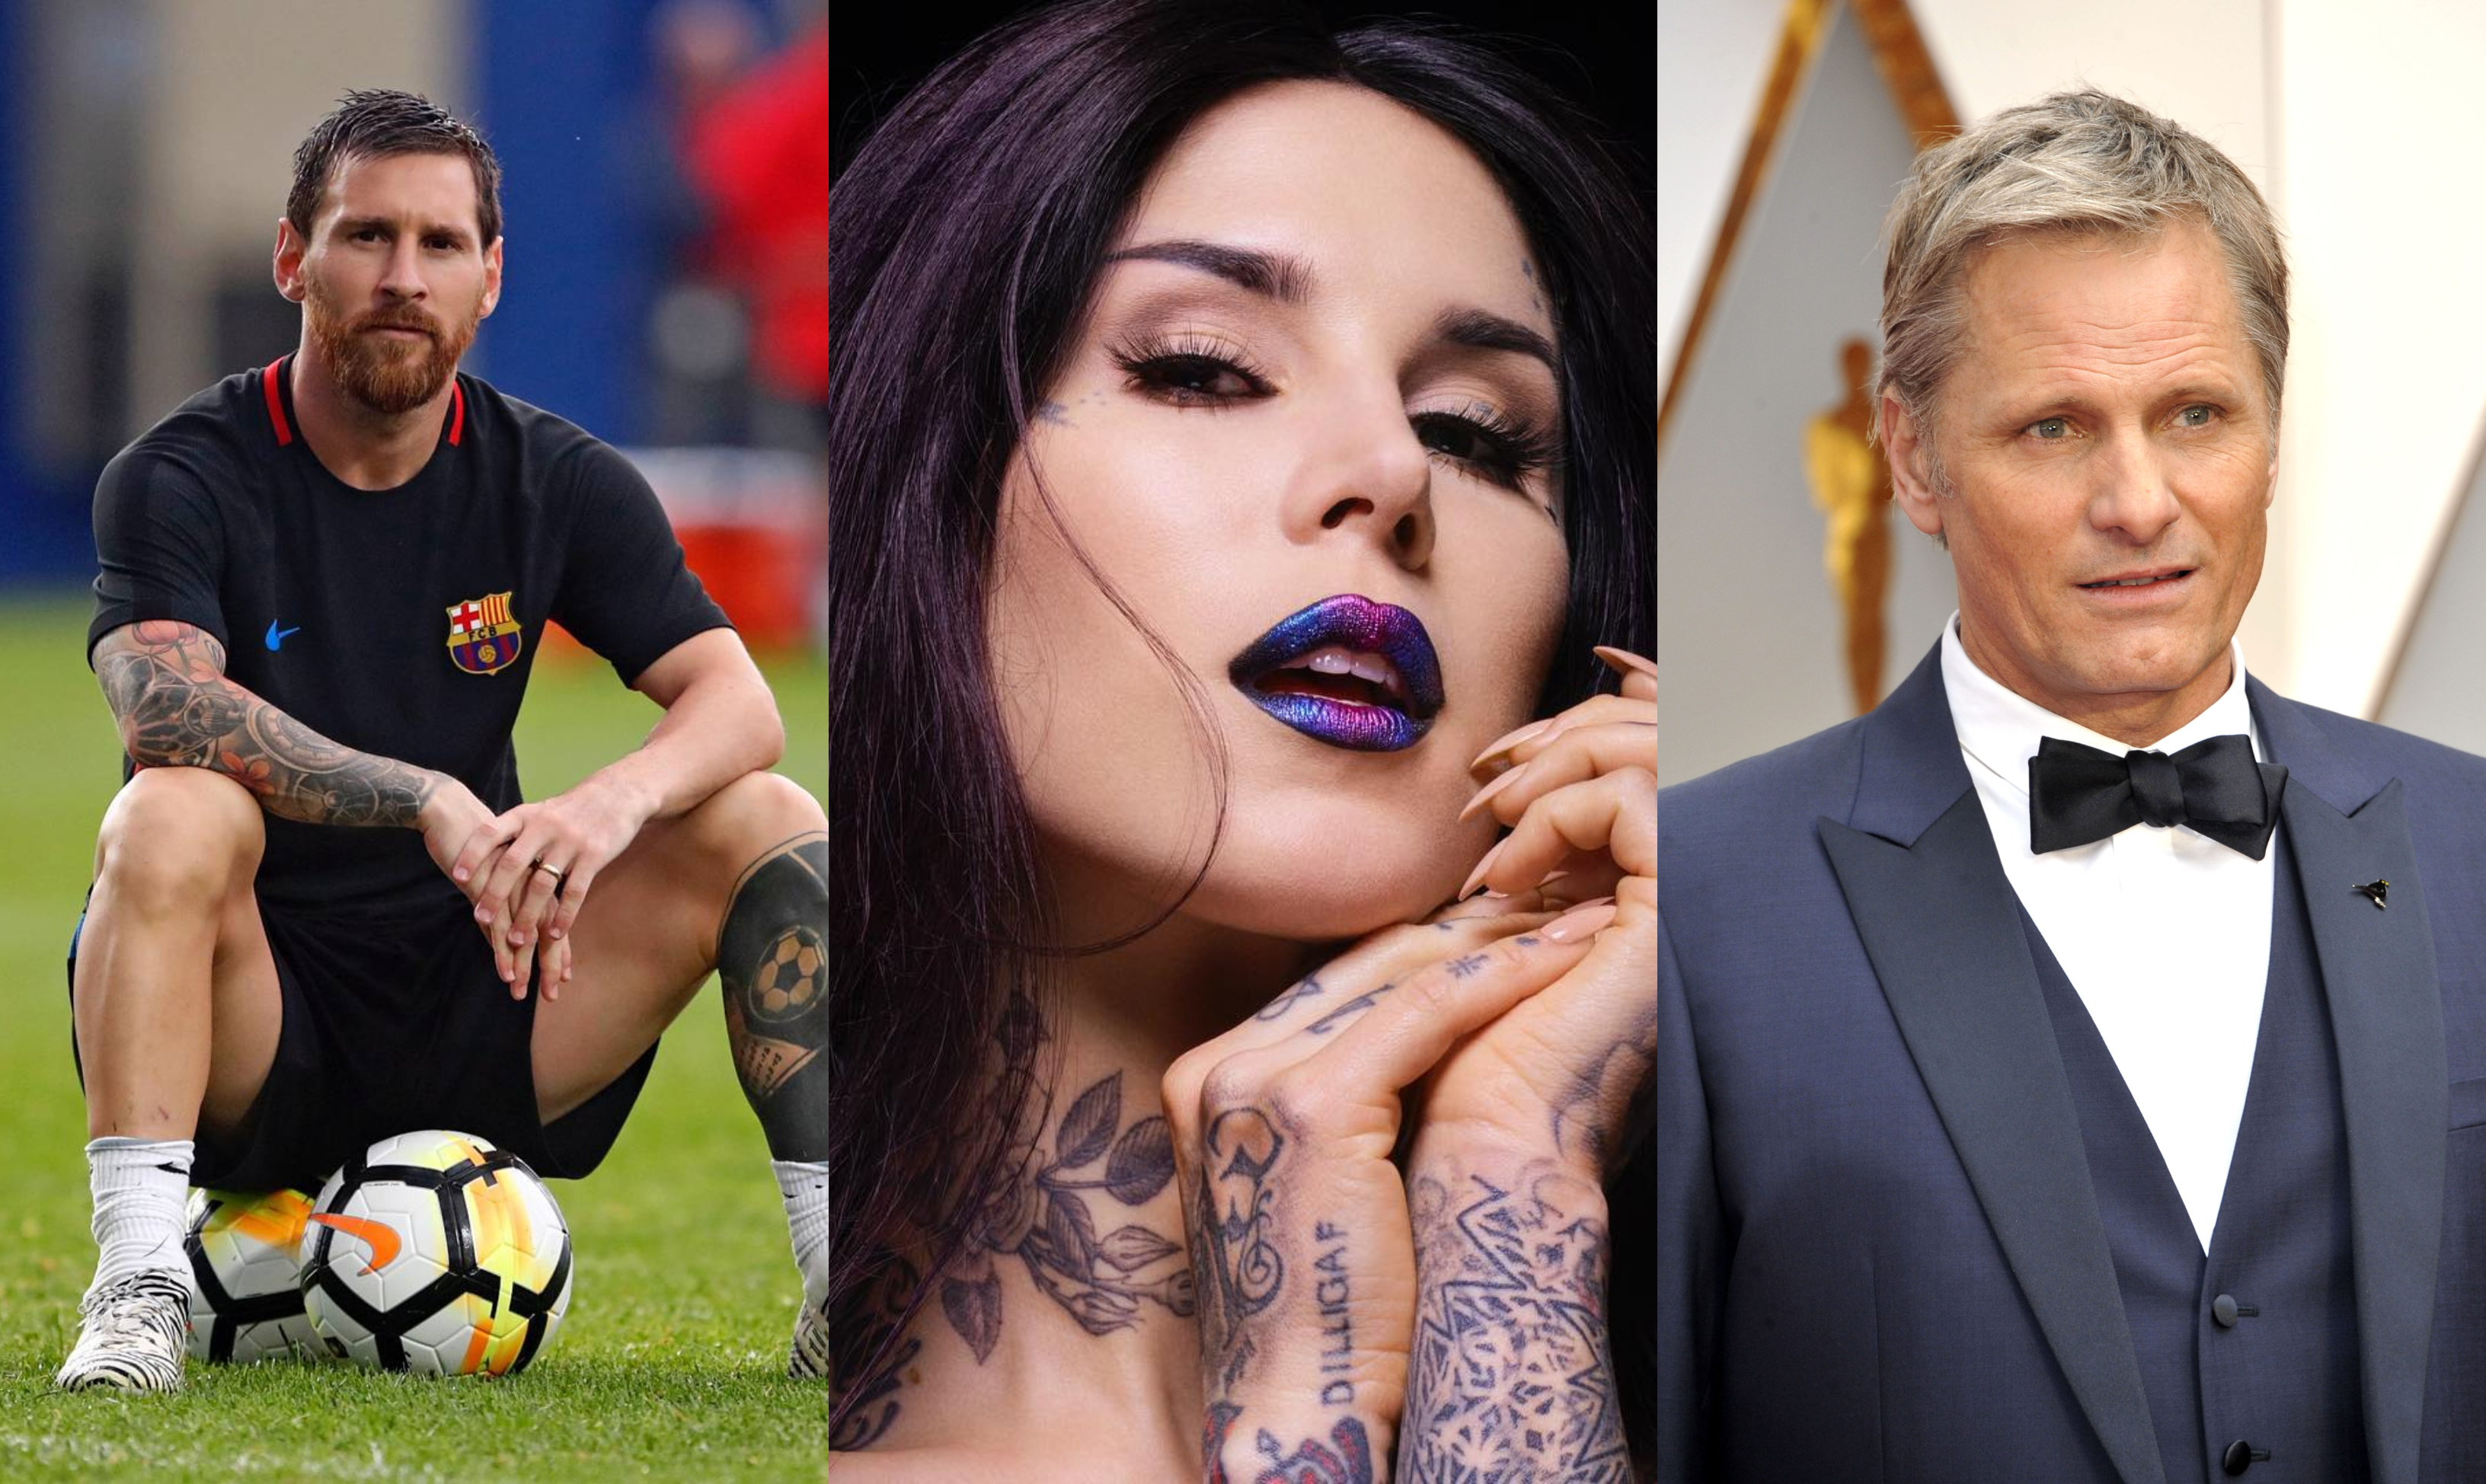 From soccer star Lionel Messi to the muse behind Michael Bublé's romantic tunes, these are 10 Argentines who have taken the world by surprise. (Photo: Instagram)